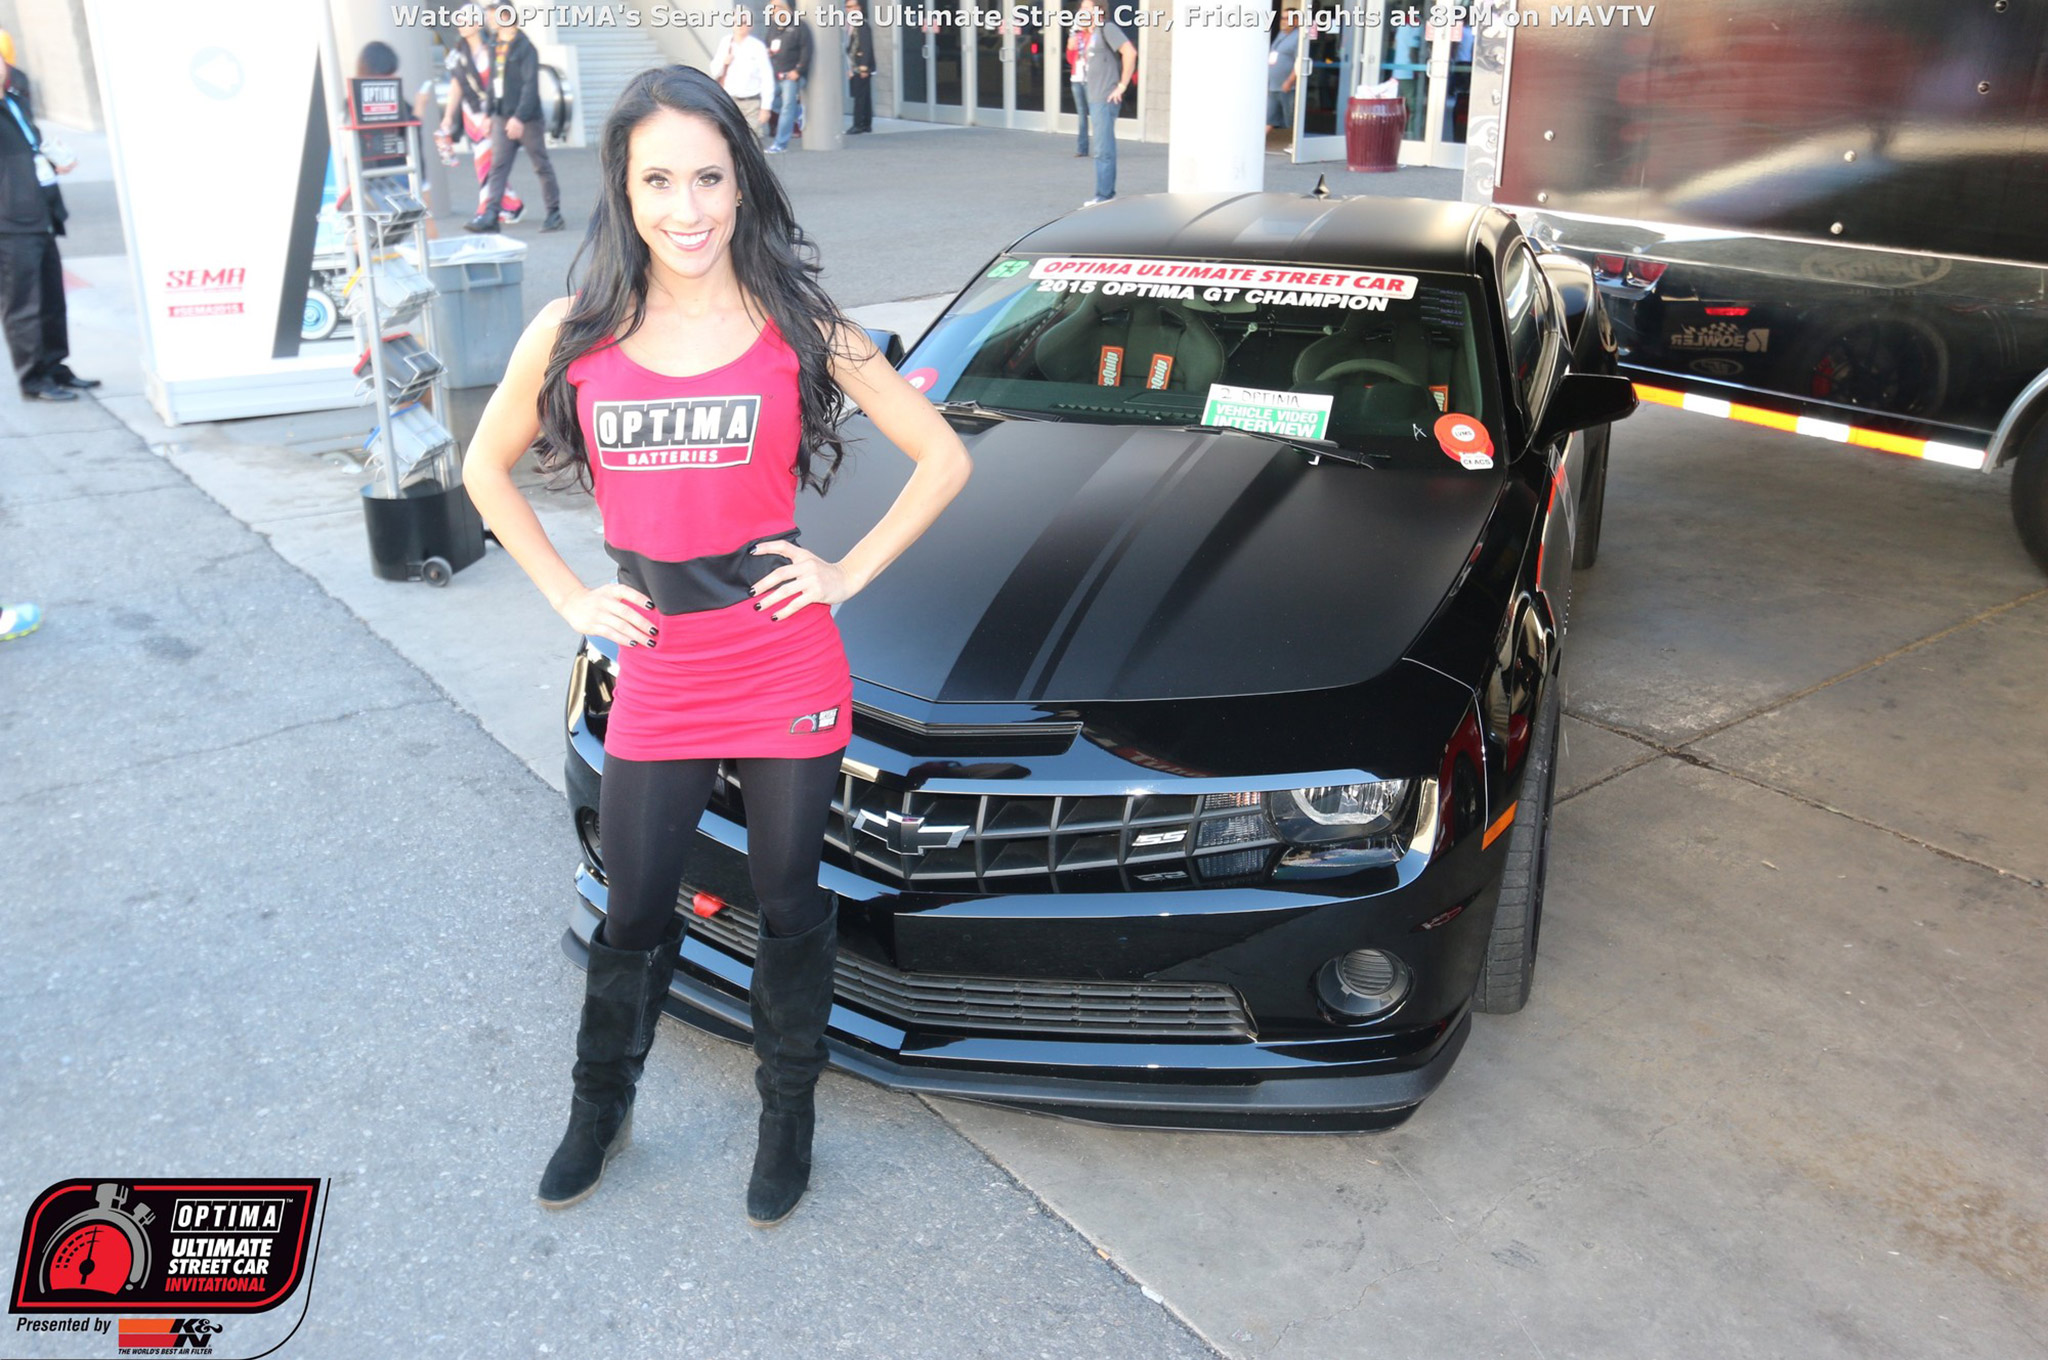 The regular season champions had their own location at SEMA in OPTIMA Alley. Bryan Johnson's Camaro won the GT class championship and was guarded throughout the week by one of the OPTIMA umbrella girls